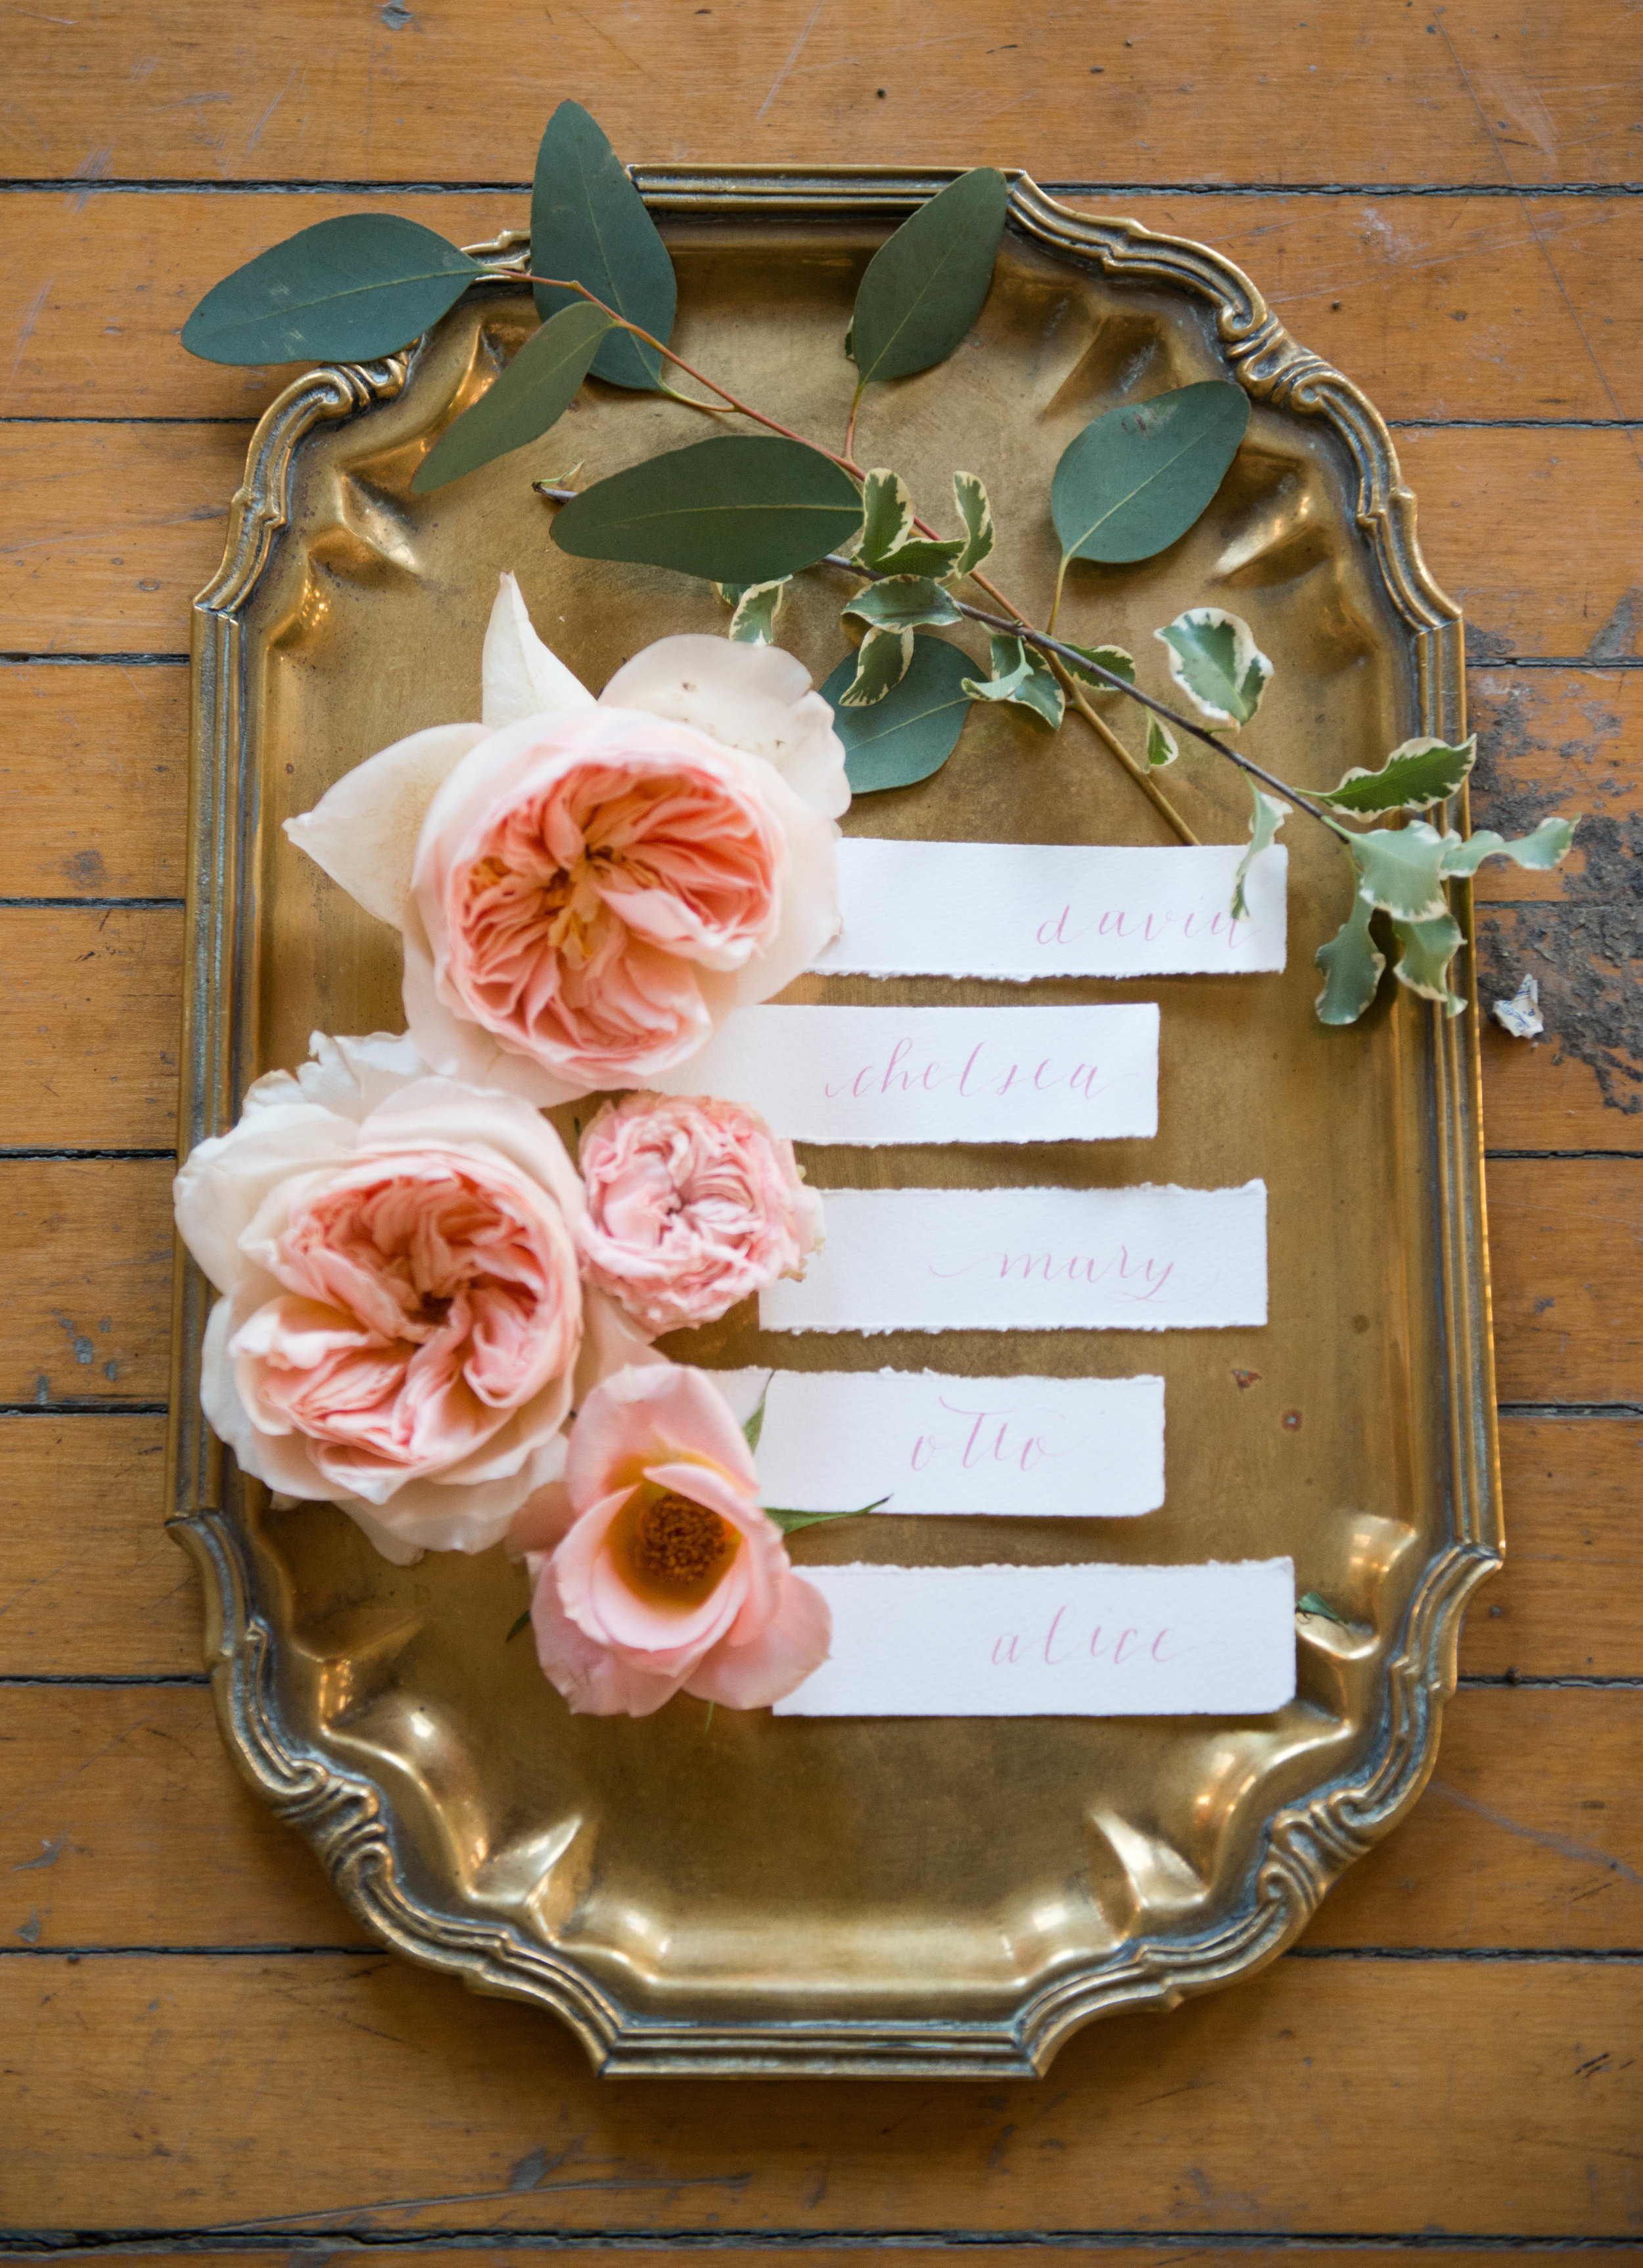 shabby chic name cards.  Oakland County and Metro Detroit michigan Wedding photographer.  Florals: Take A Seat Events - www.lisavillellaphotography.com